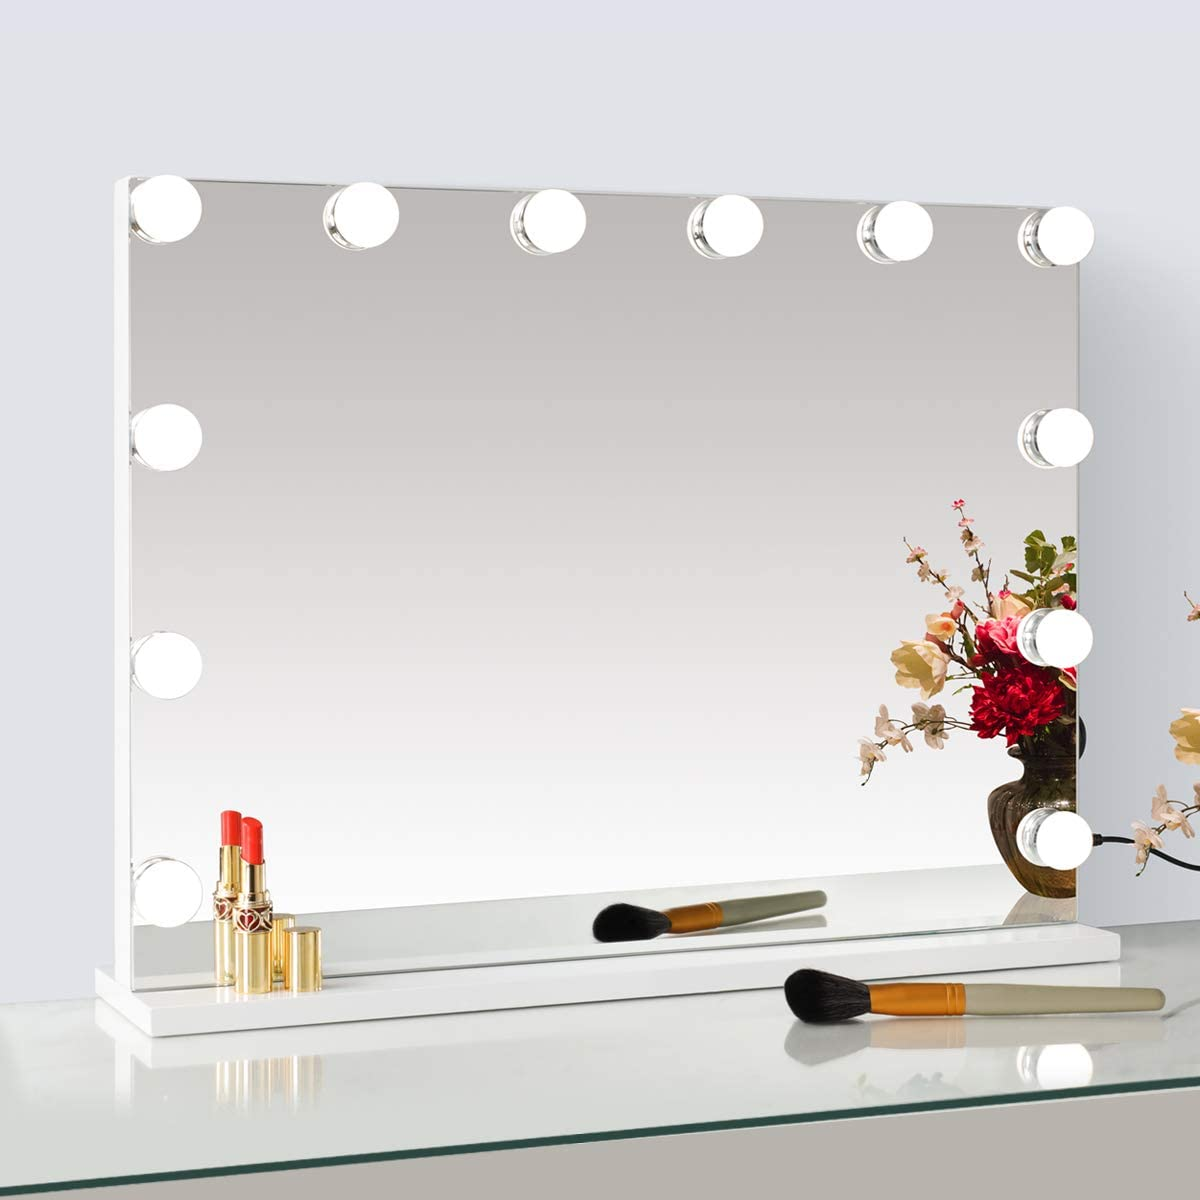 SHOWTIMEZ Lighted Makeup Vanity Mirror, Frameless Light-up Hollywood Tabletops Cosmetic Display with USB Charging Port, Dimmable Bulbs, 3 Color Tone Settings, 23 W x 18 H, White